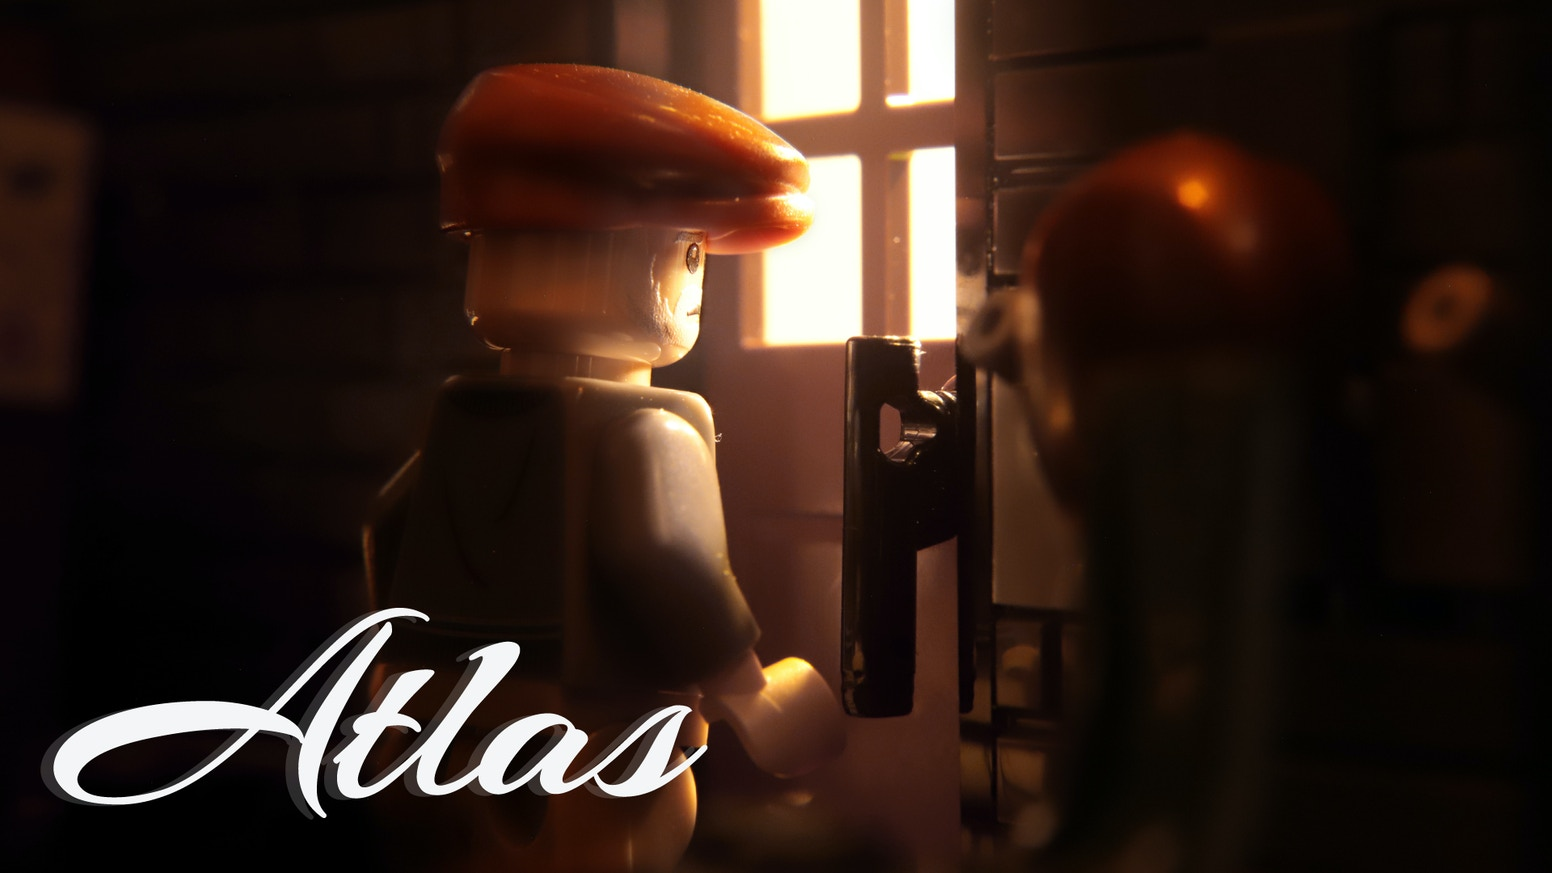 A stunning stop motion brickfilm about sacrifice and the power of love. Brought to you by Monitogo Studios.